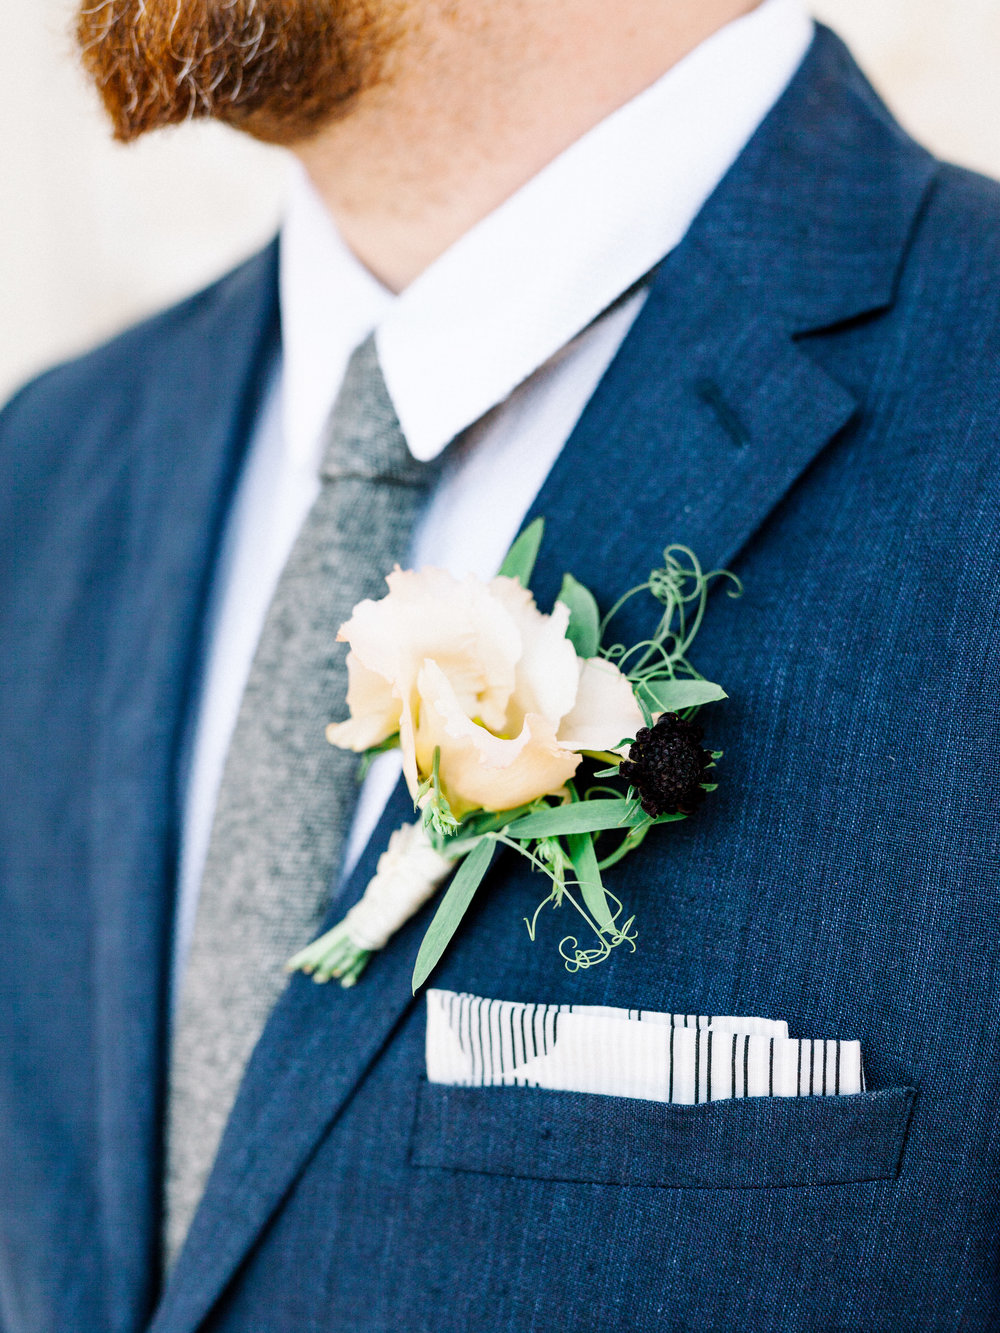 A sweet and whimsical boutonniere in white and black from our elopement wedding inspiration shoot at the Woodlands Mansion in Philadelphia.